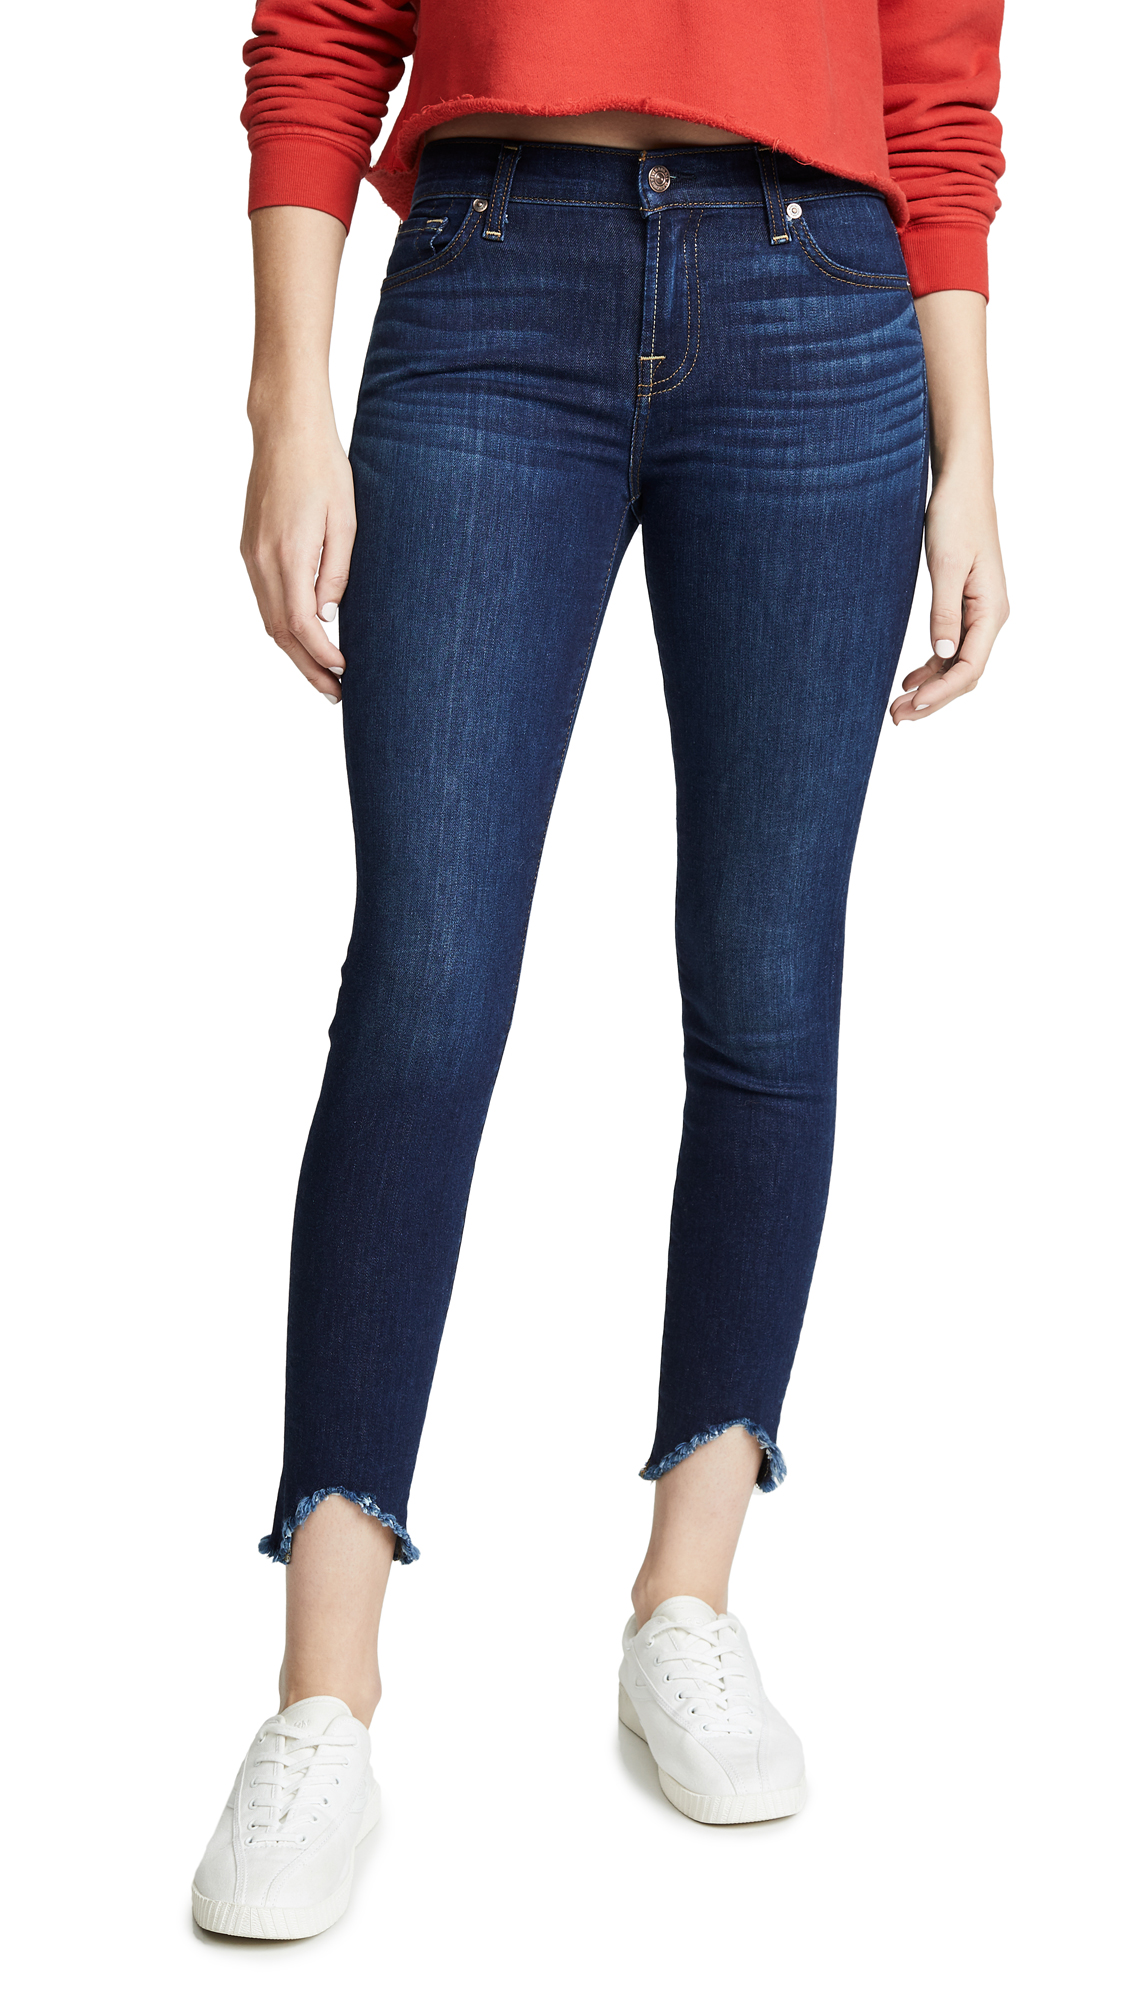 7 For All Mankind The Ankle Skinny Jeans - Serrano Night